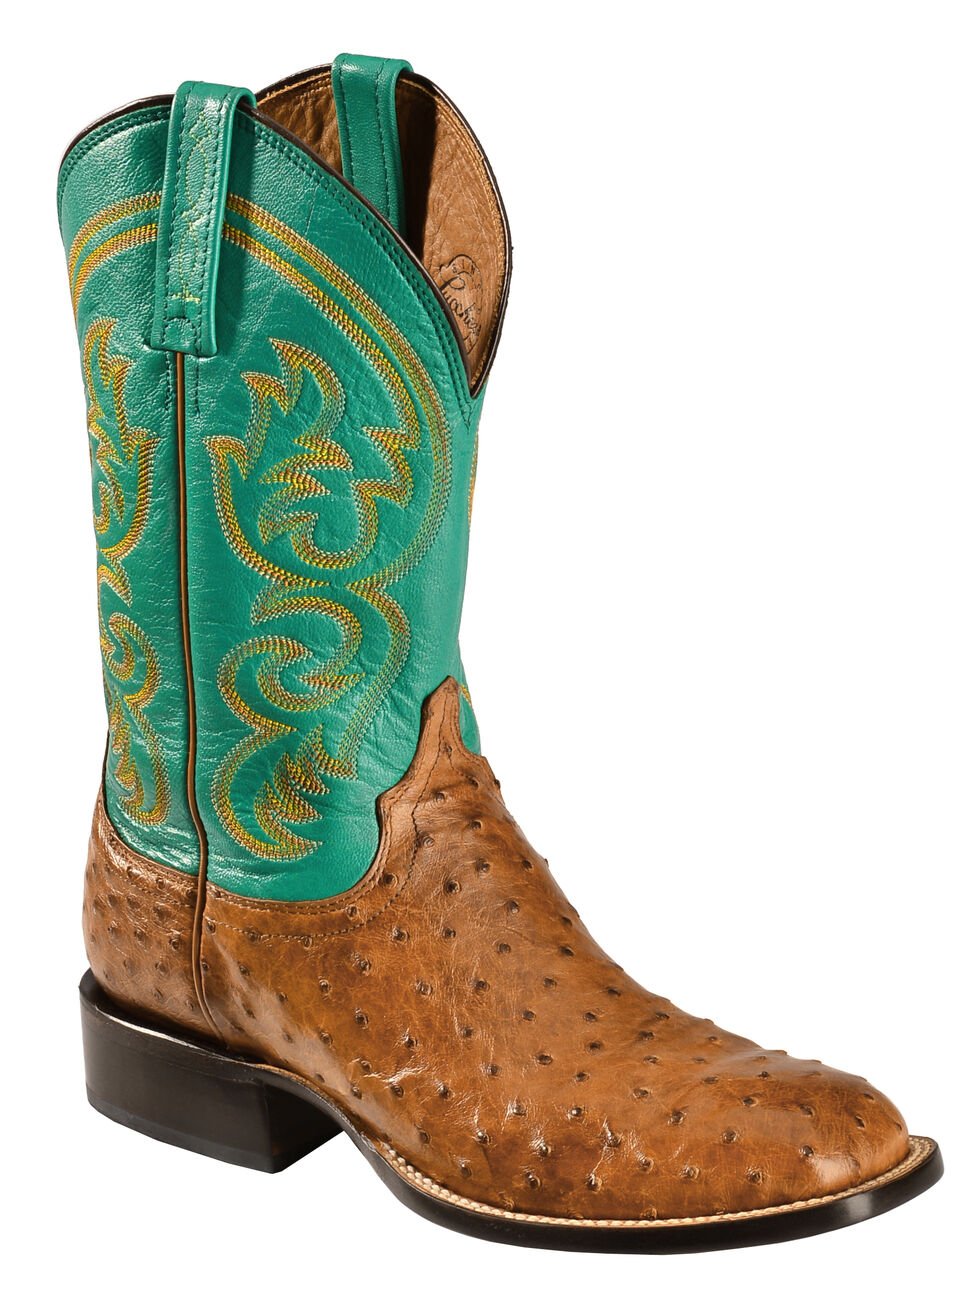 Lucchese Handcrafted 1883 Josiah Full Quill Ostrich Cowboy Boots - Square Toe, Tan, hi-res